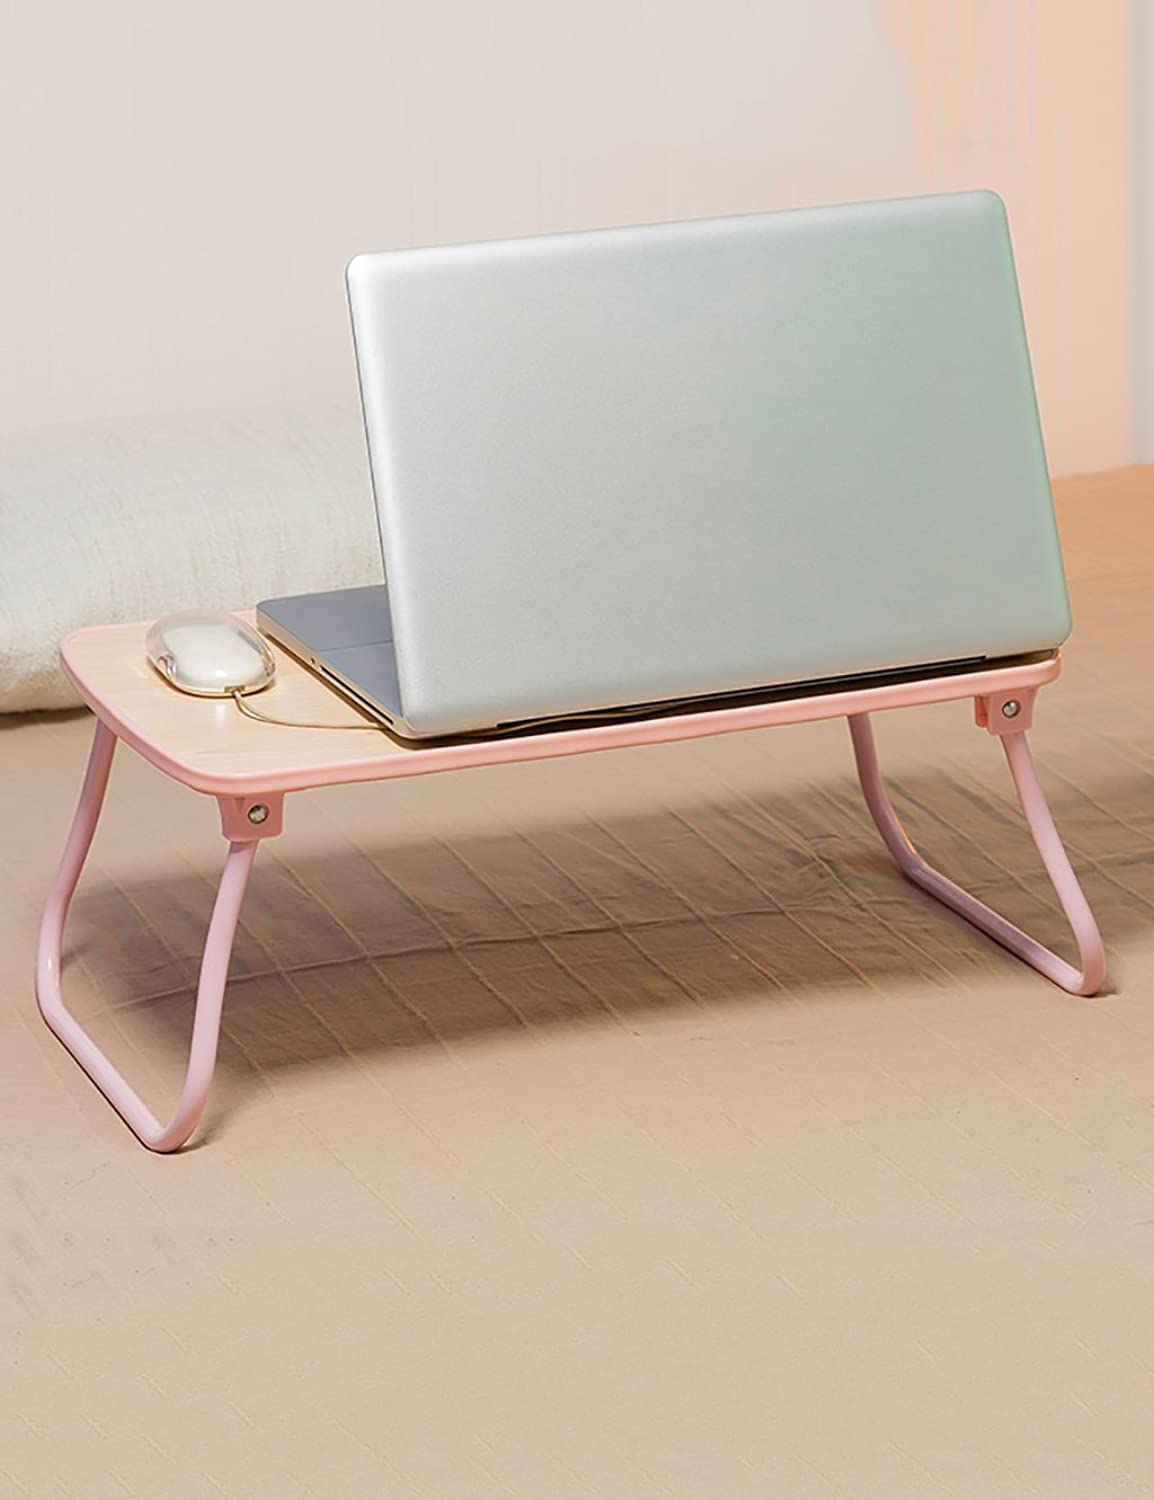 HAIPENG Laptop Table Folding Table Lazy Desk Simple Study Table (4 colors Available) (color   Pink, Size   LWH 52.6  30.5  22.8cm)